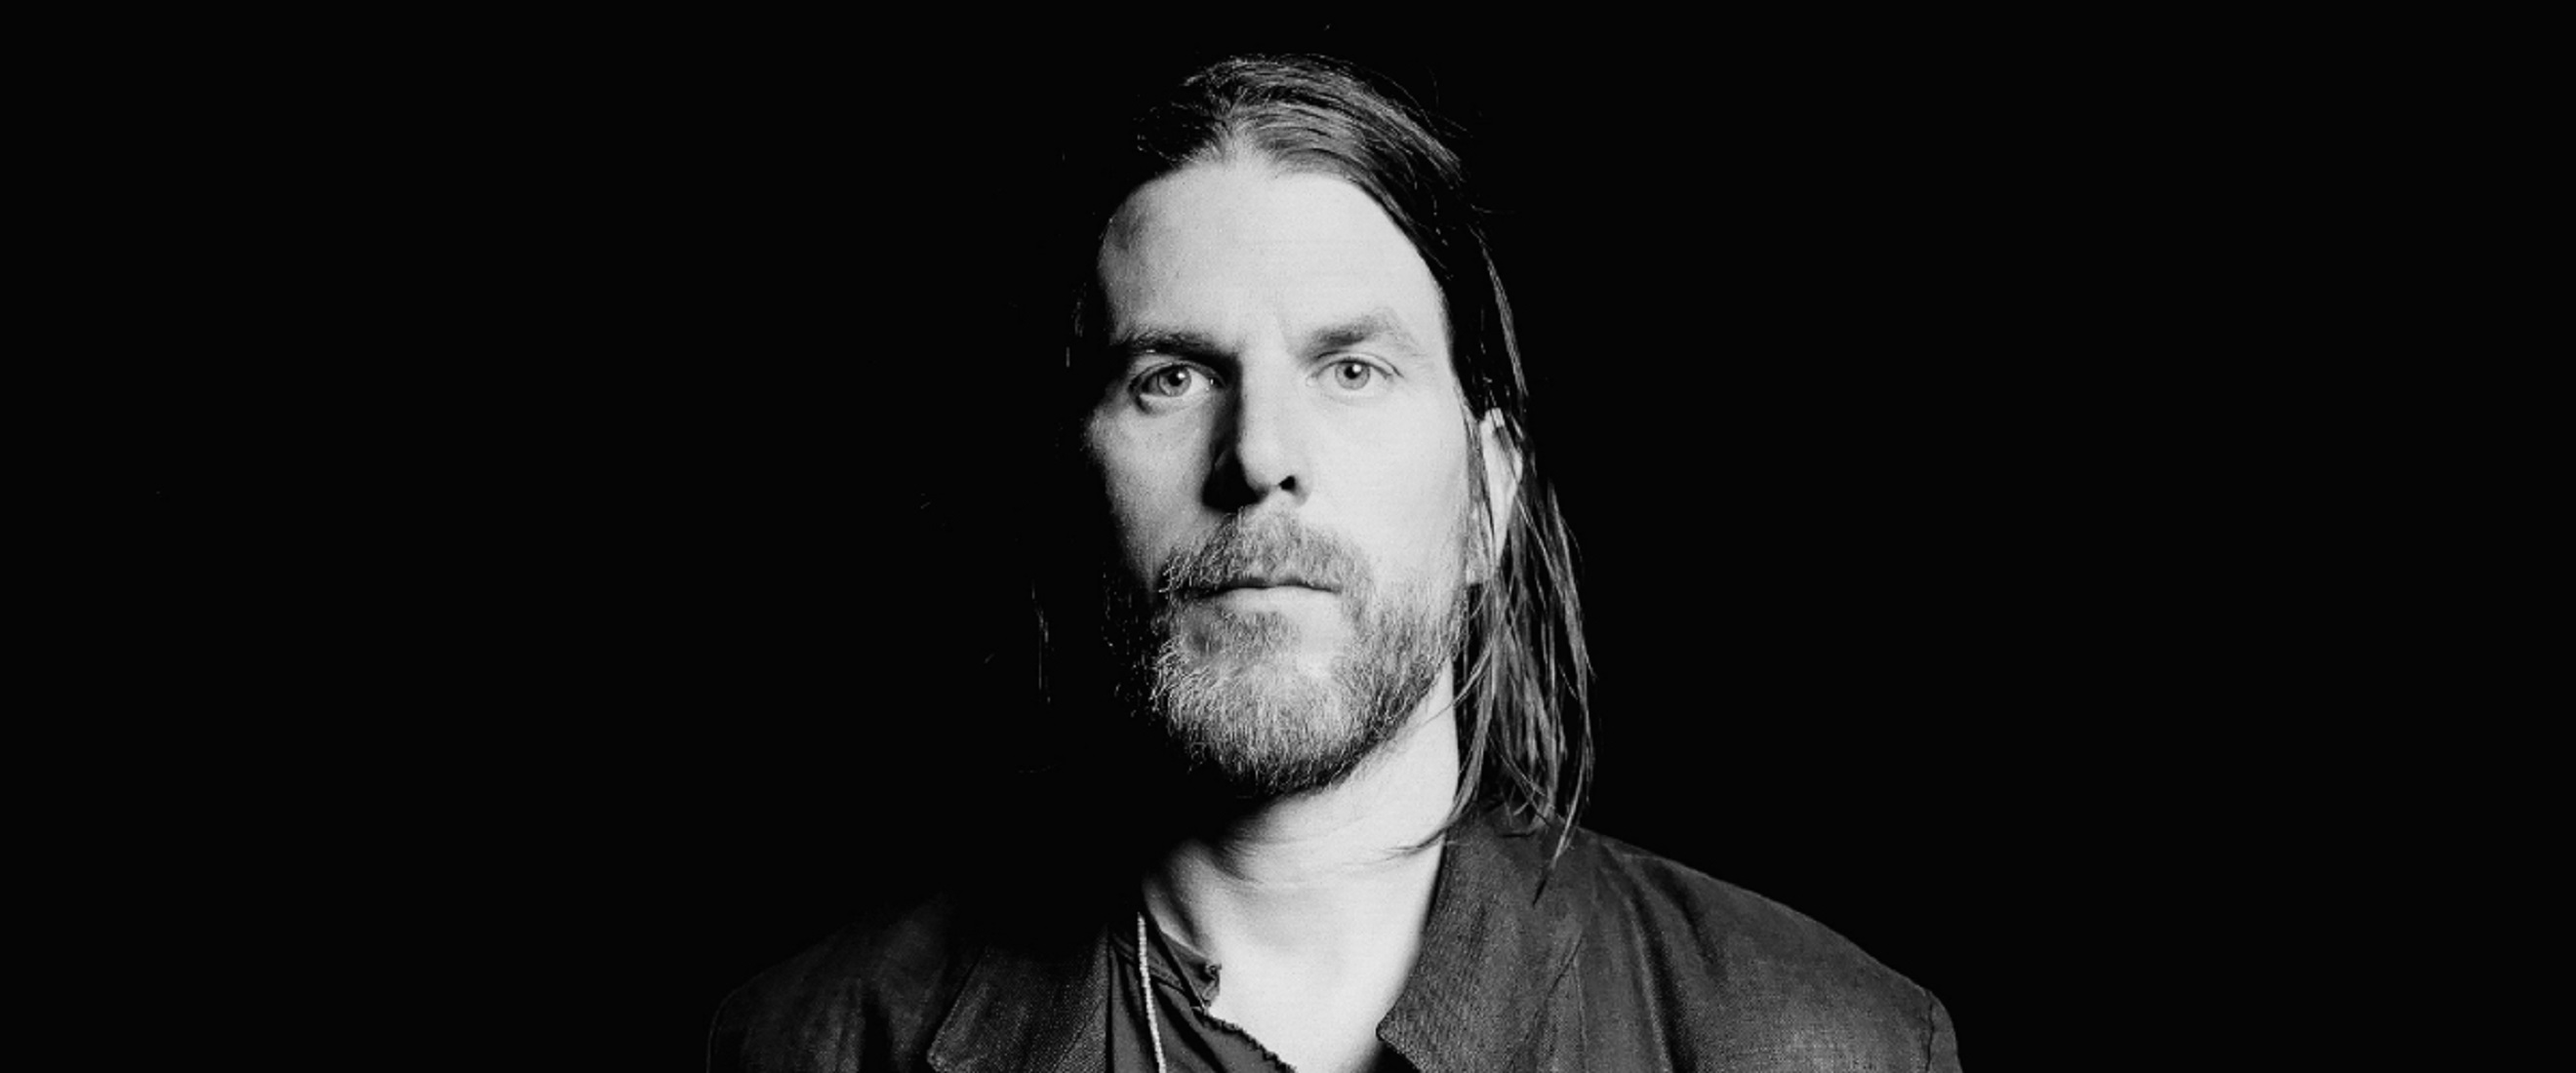 Jonathan Wilson To Release DIXIE BLUR on March 6th Via BMG